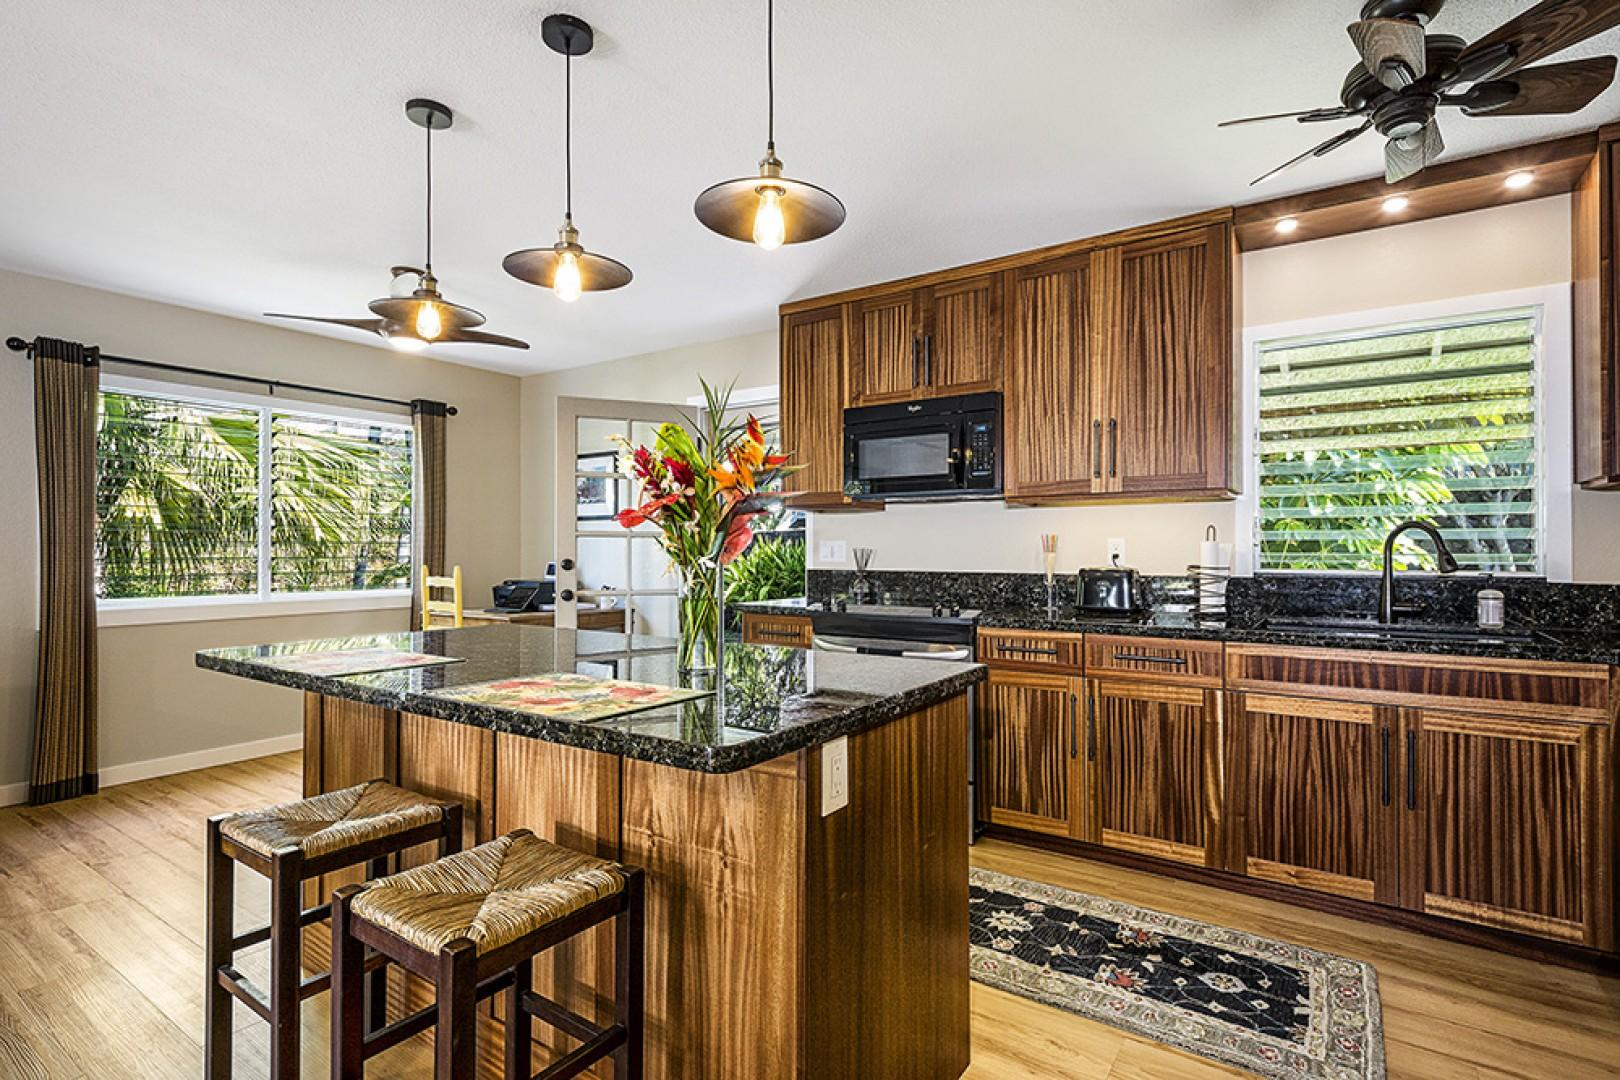 A beautiful custom built kitchen with all new appliances.